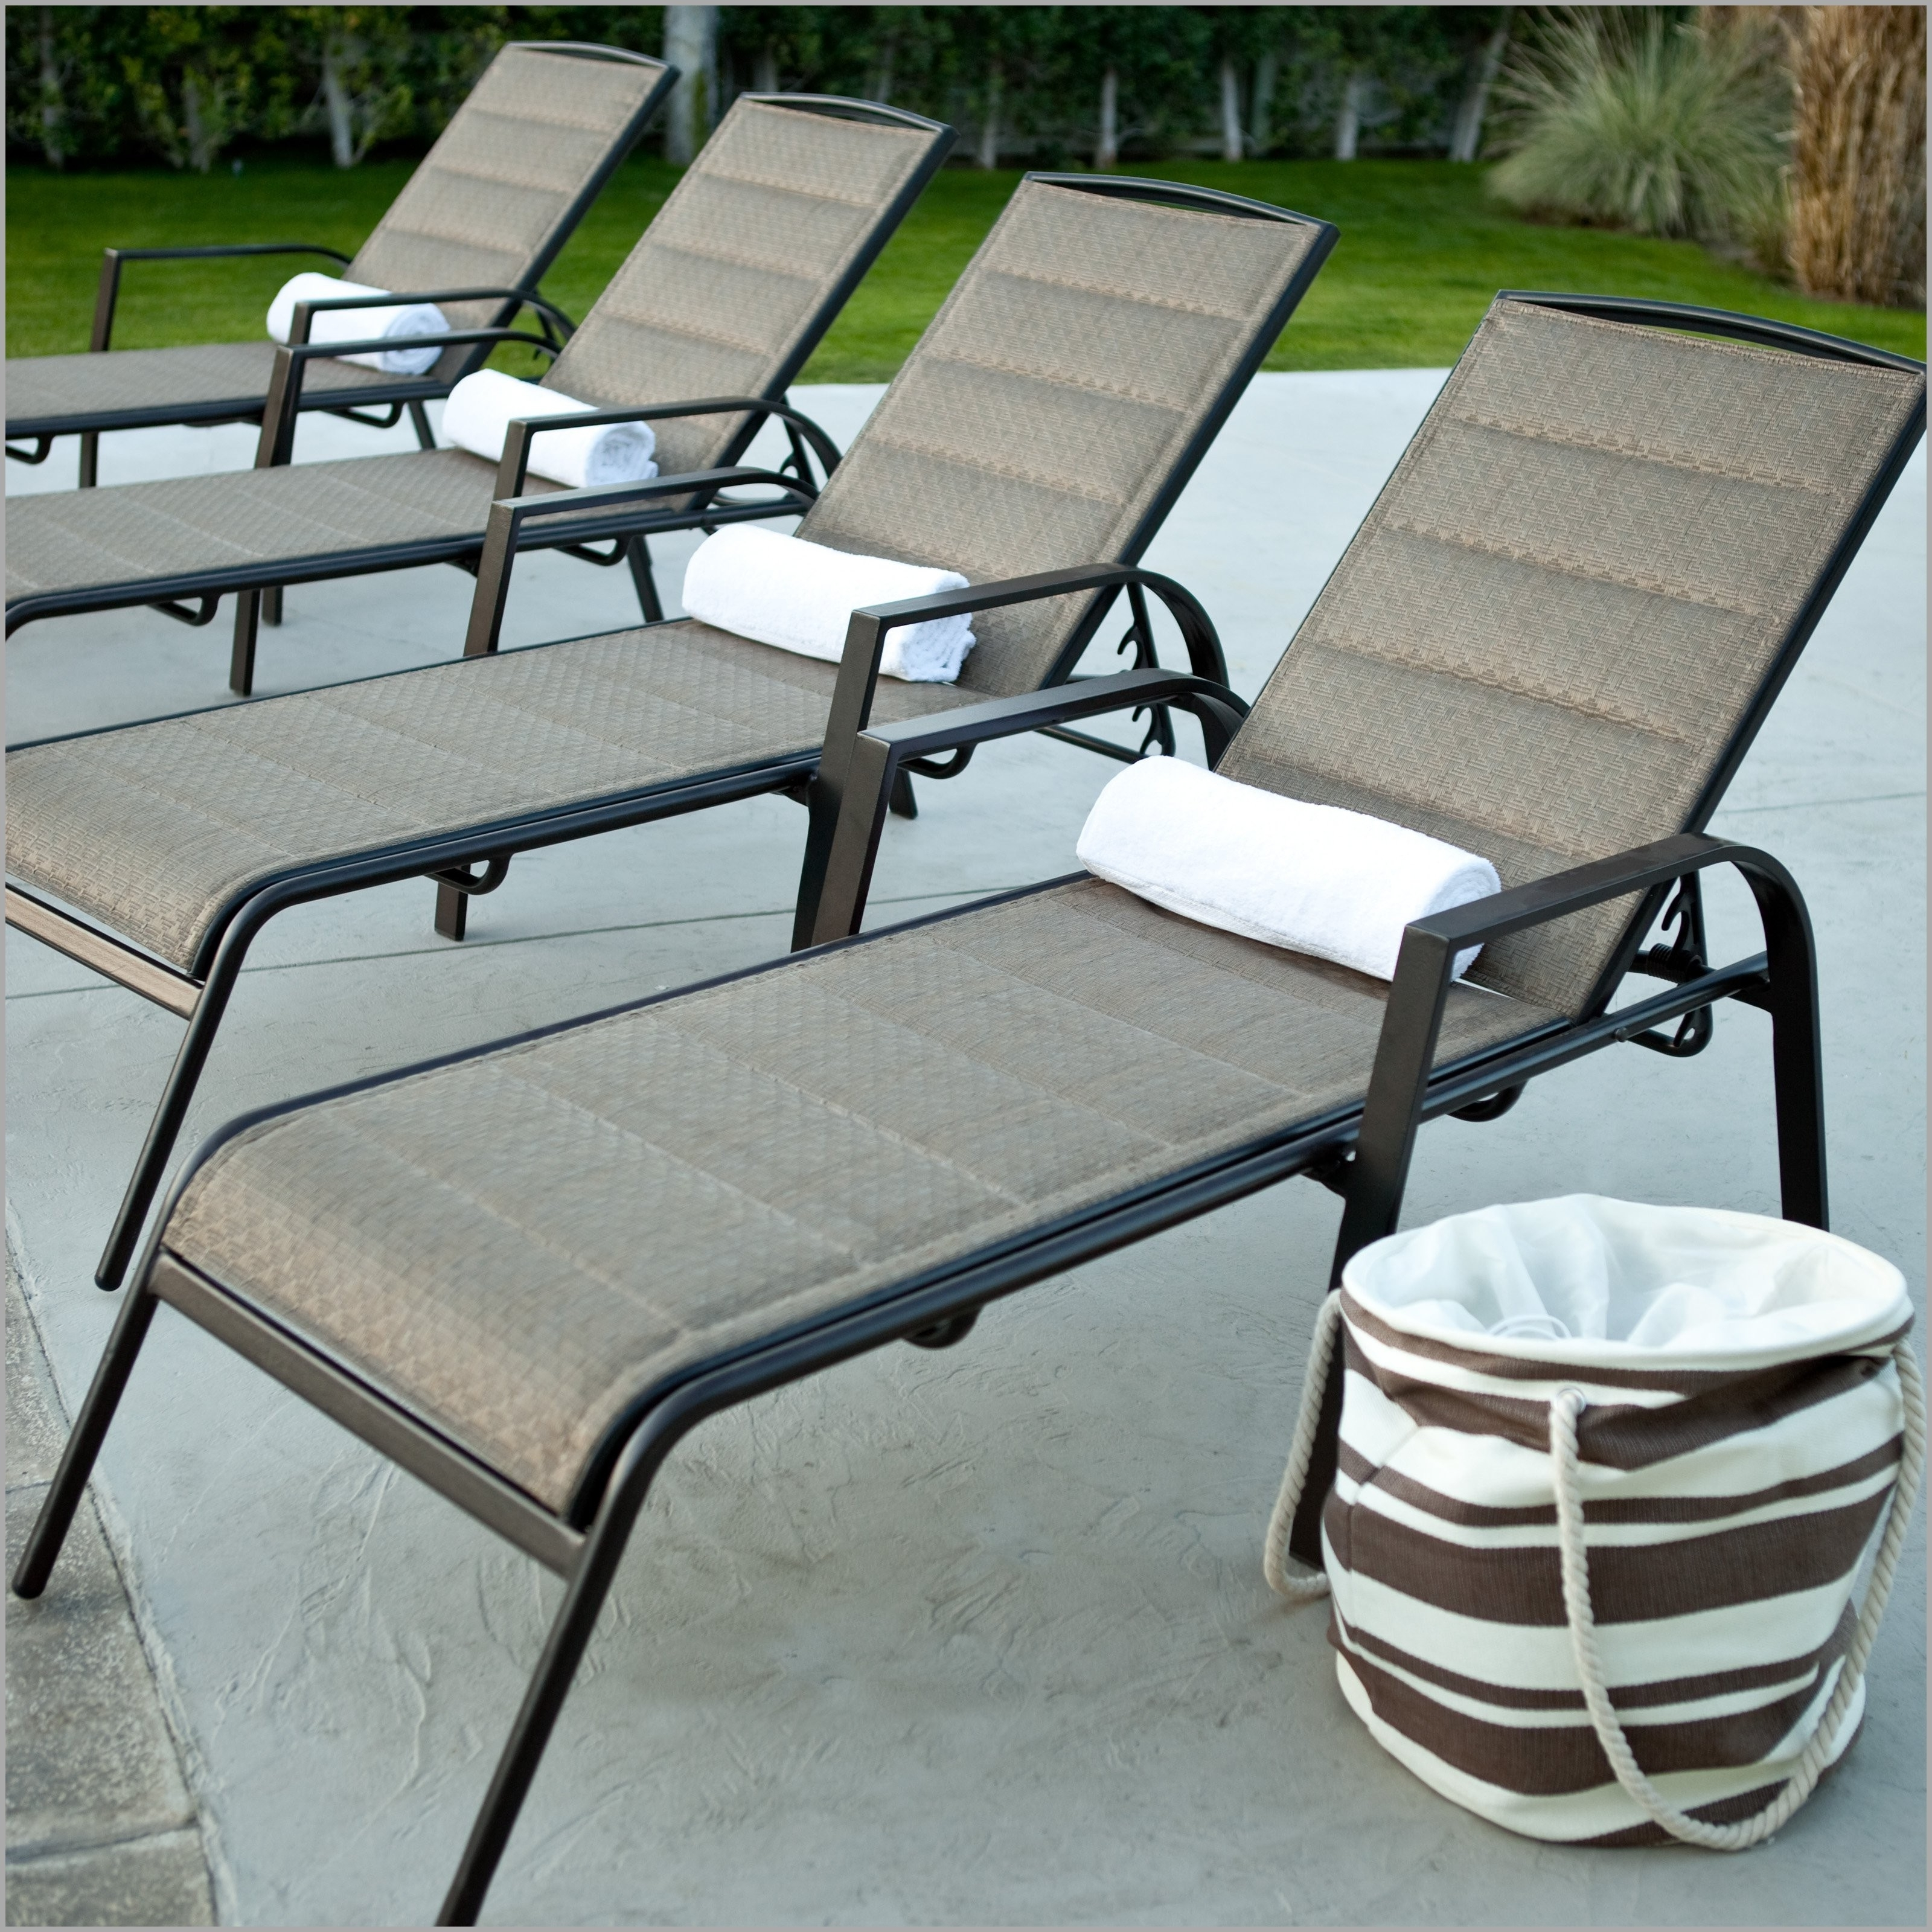 Martha Stewart Outdoor Chaise Lounge Chairs Regarding Recent Extraordinary Pool Chaise Lounge Chairs Decorative 600357 – Chair (View 5 of 15)